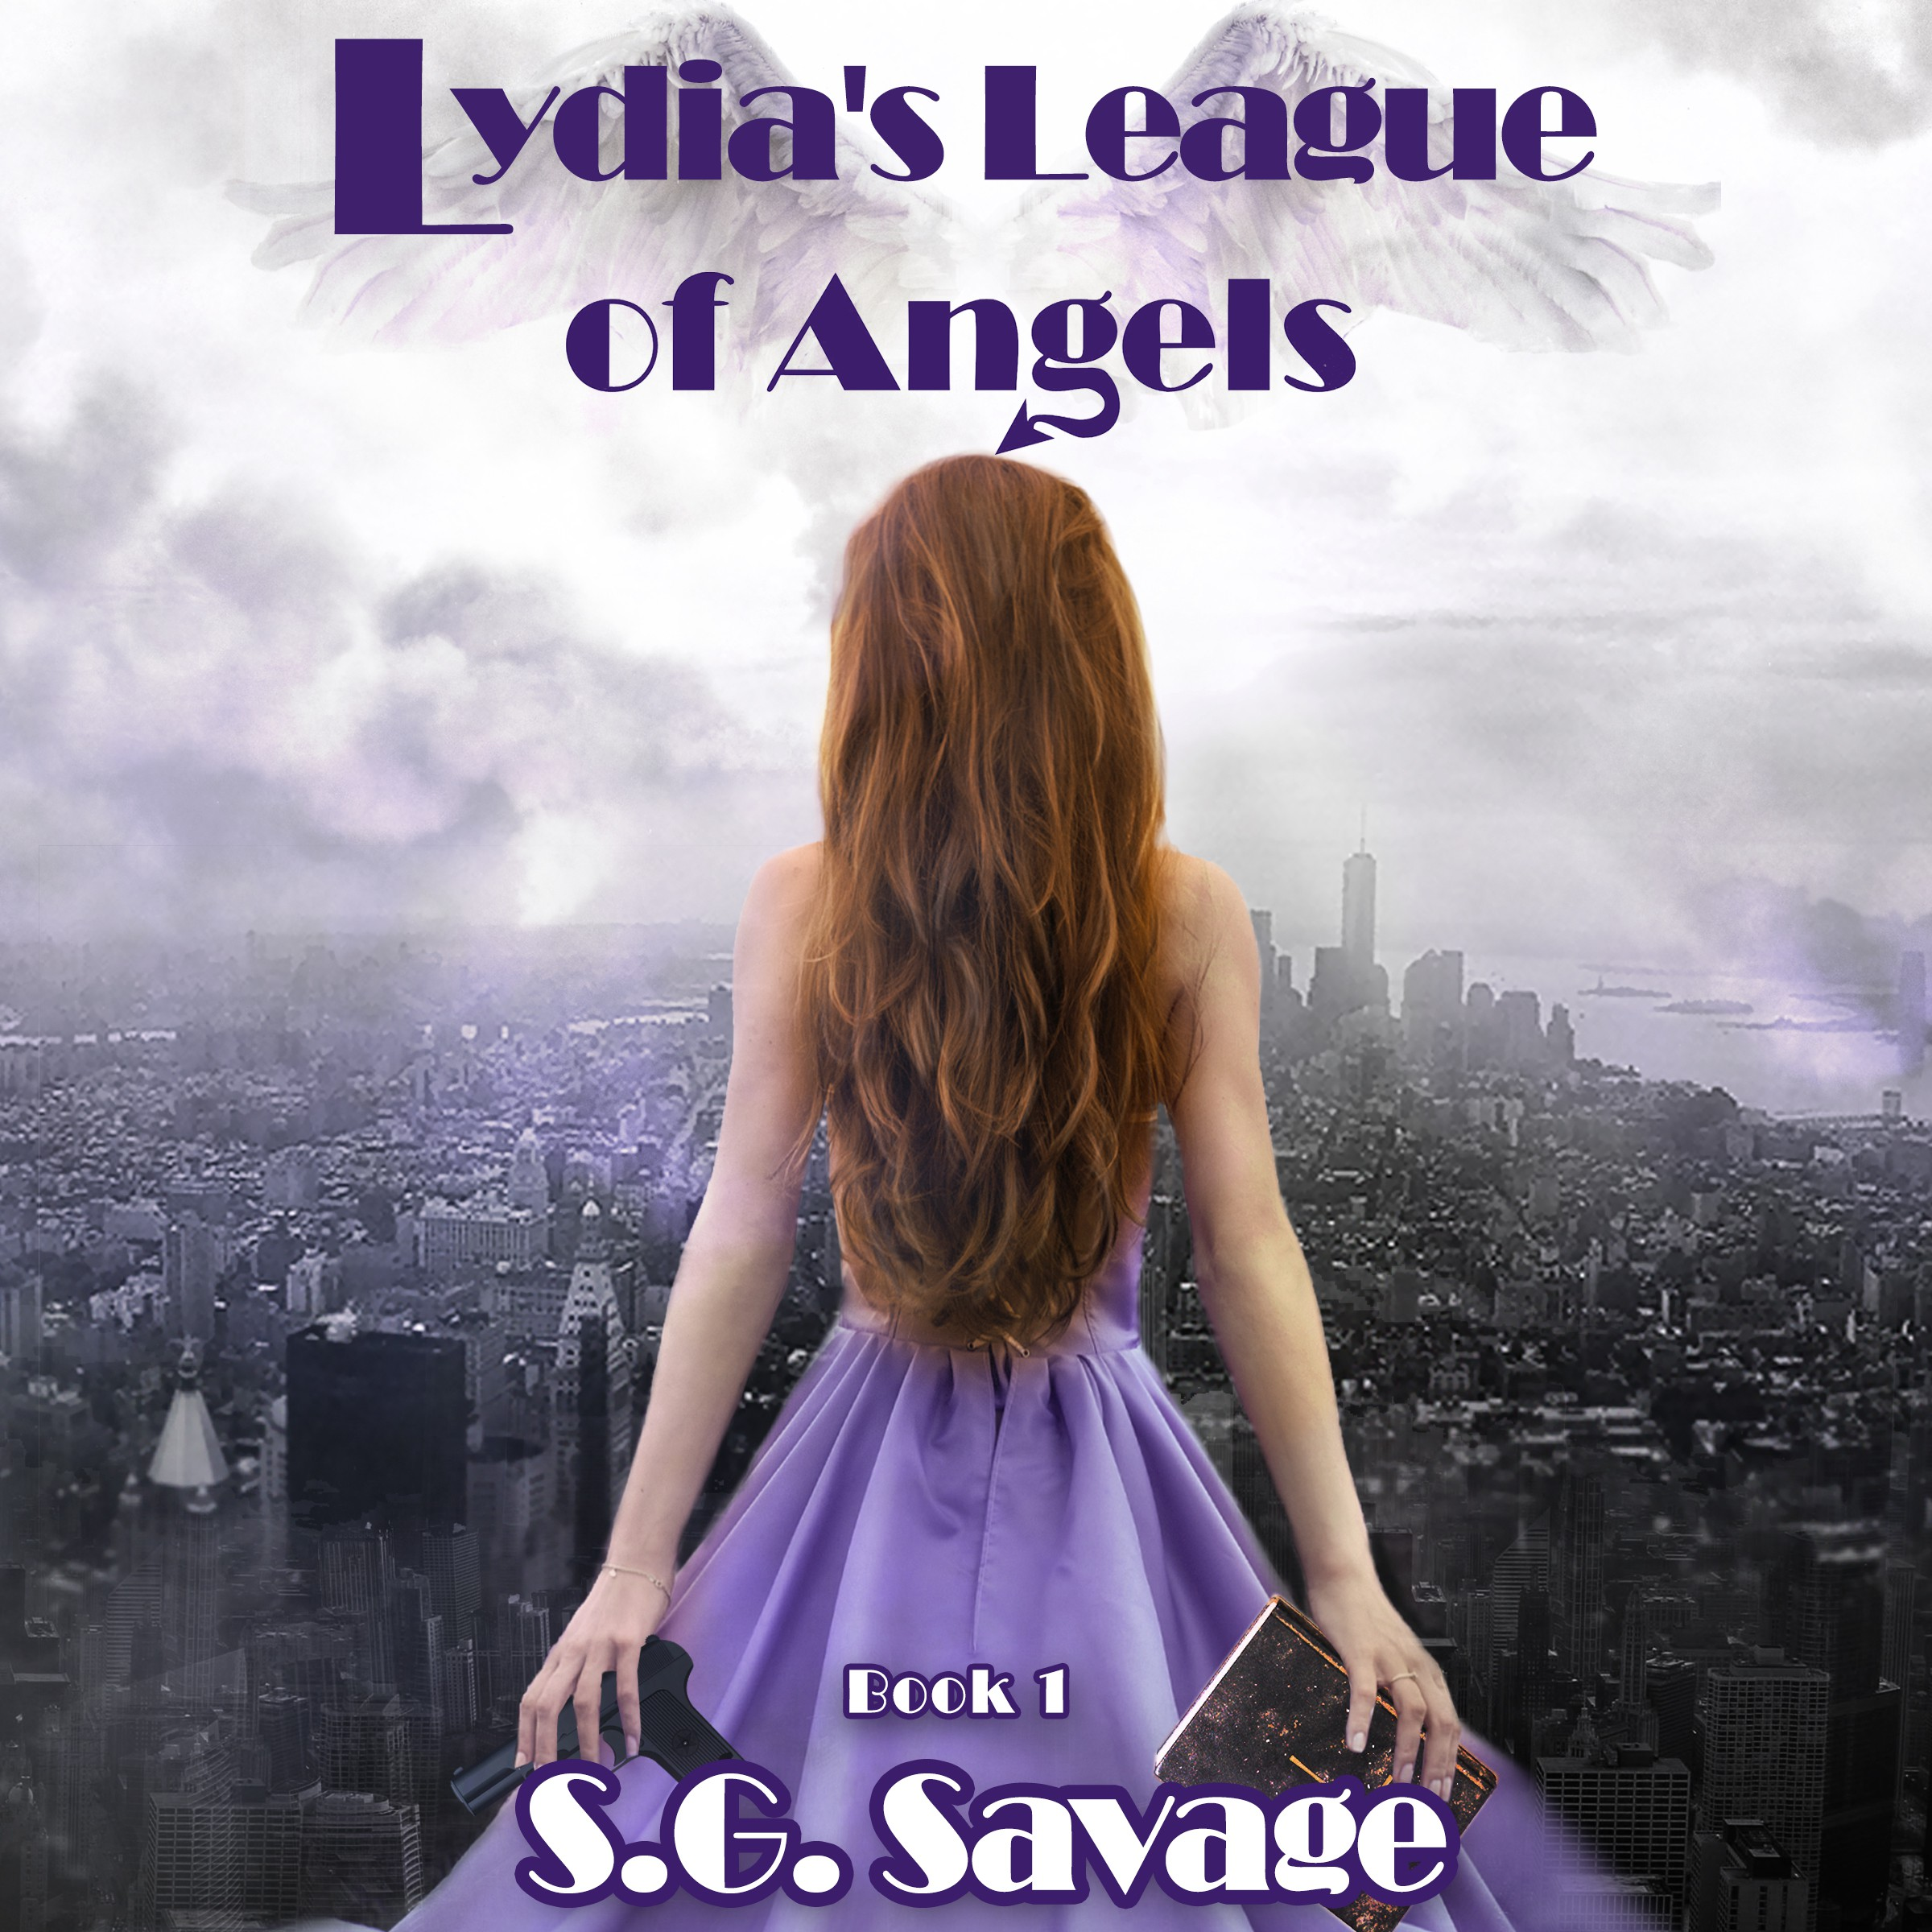 """""""Lydia's League of Angels"""" first in 5 novel series needs unique cover - heroines, angels, not typical angel book"""